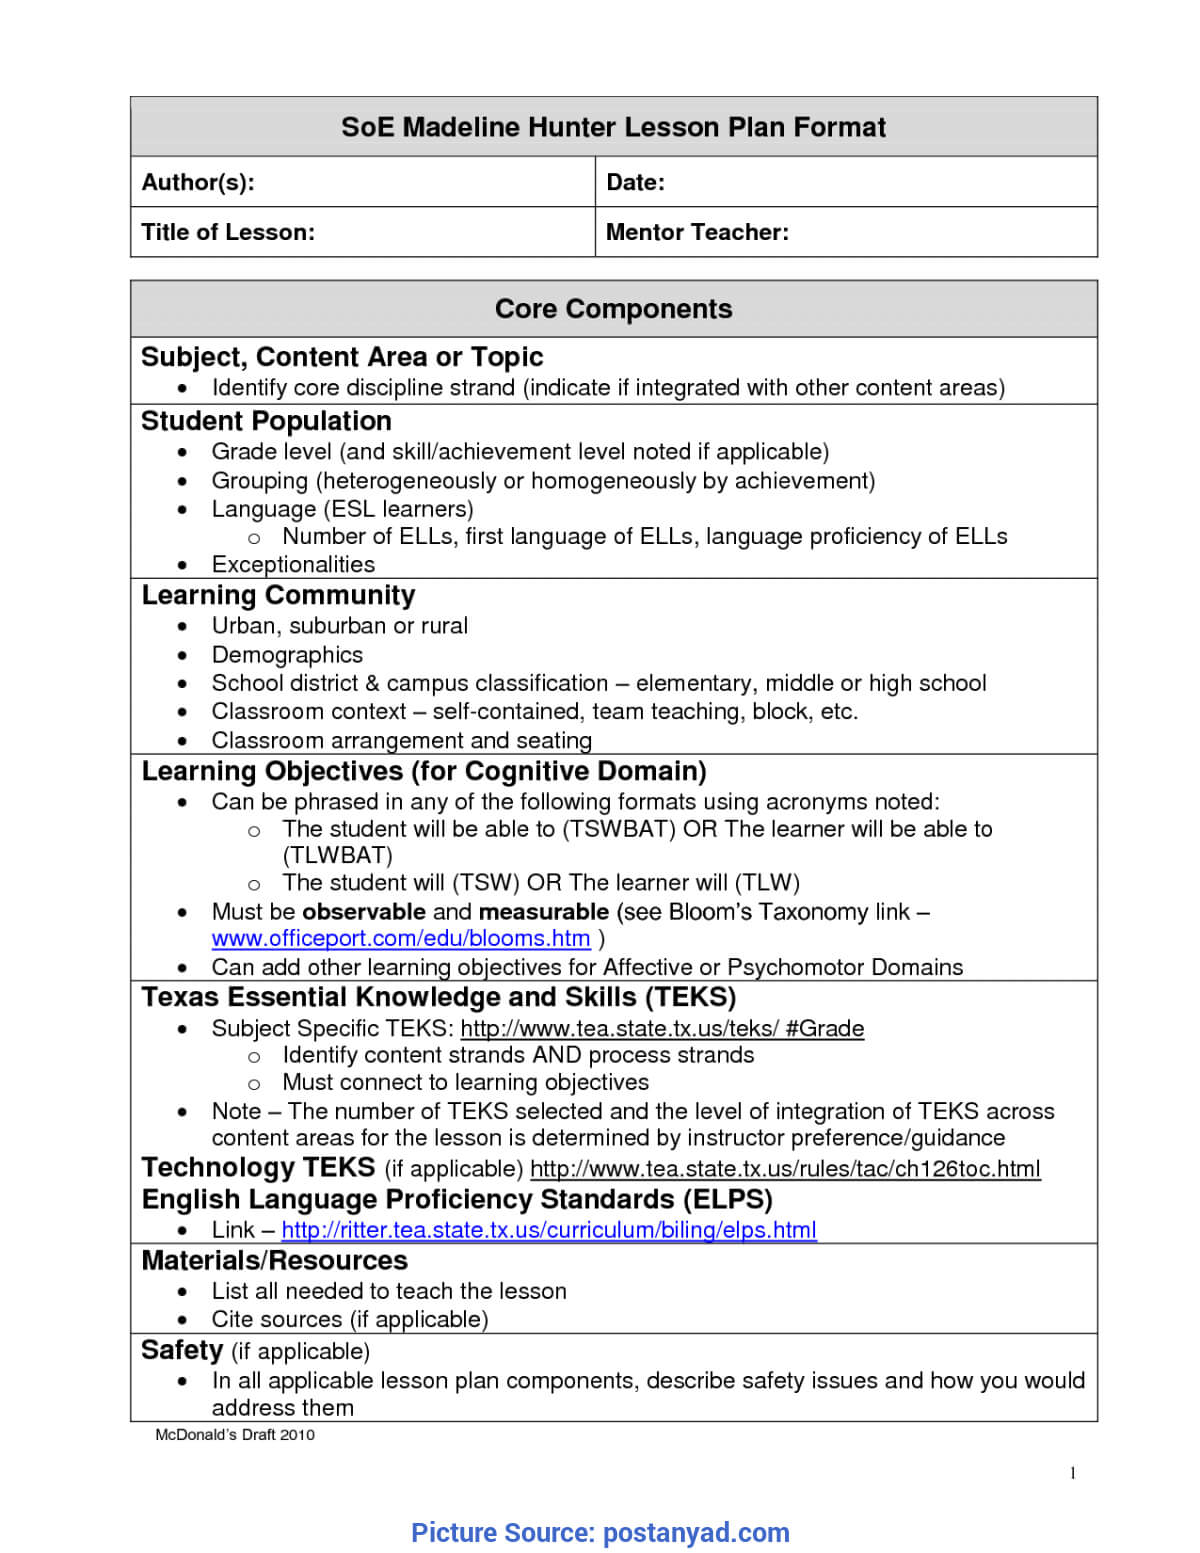 Best Madeline Hunter Lesson Plan Components Madeline Hunter With Madeline Hunter Lesson Plan Template Word